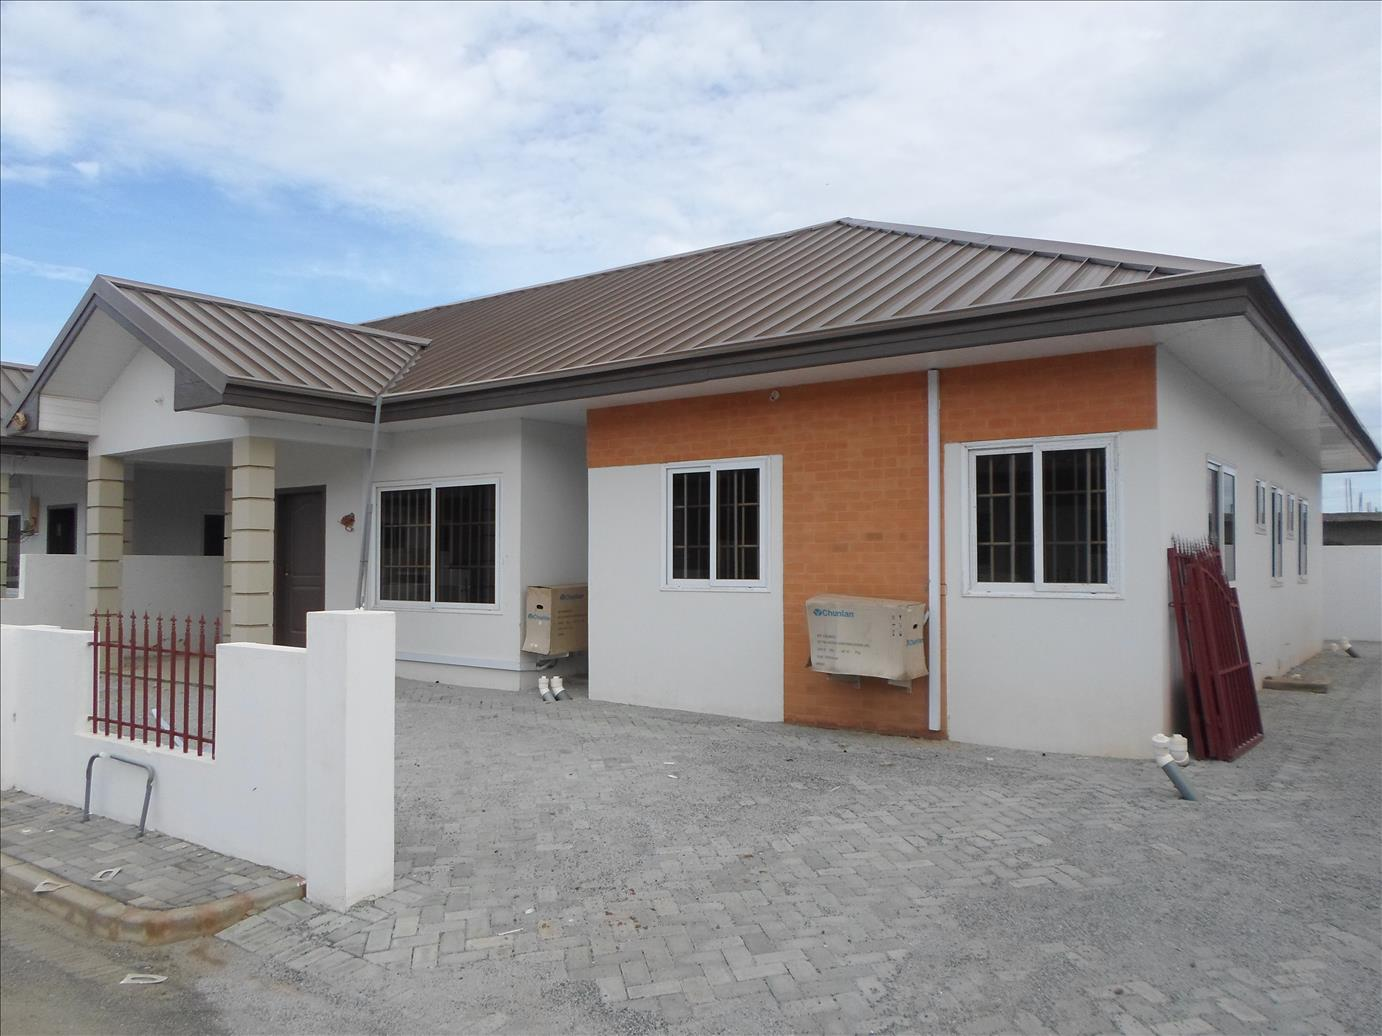 3 bedroom house for sale sellrent ghana for 3 room house